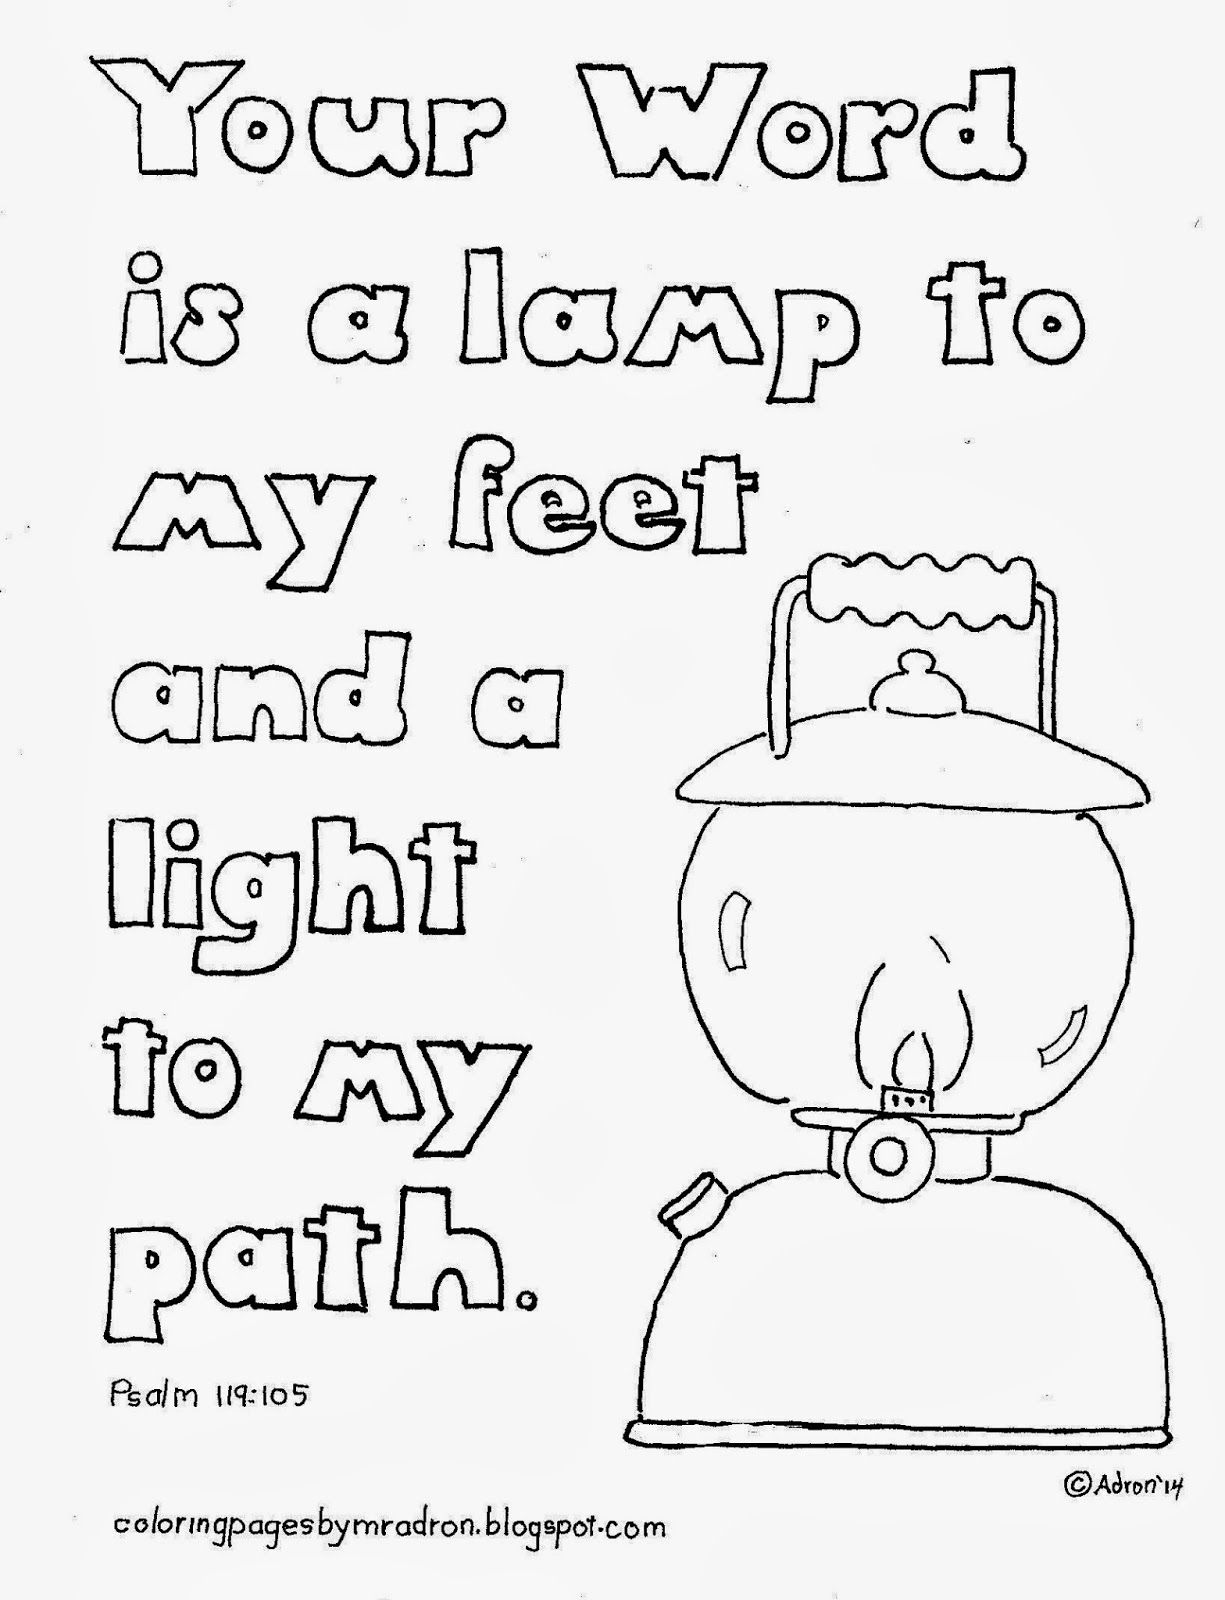 Free printable coloring pages with words -  Wisdom Guidance Coloring Pages For Kids By Mr Adron Your Word Is A Lamp To My Feet Free Kid S Colorin